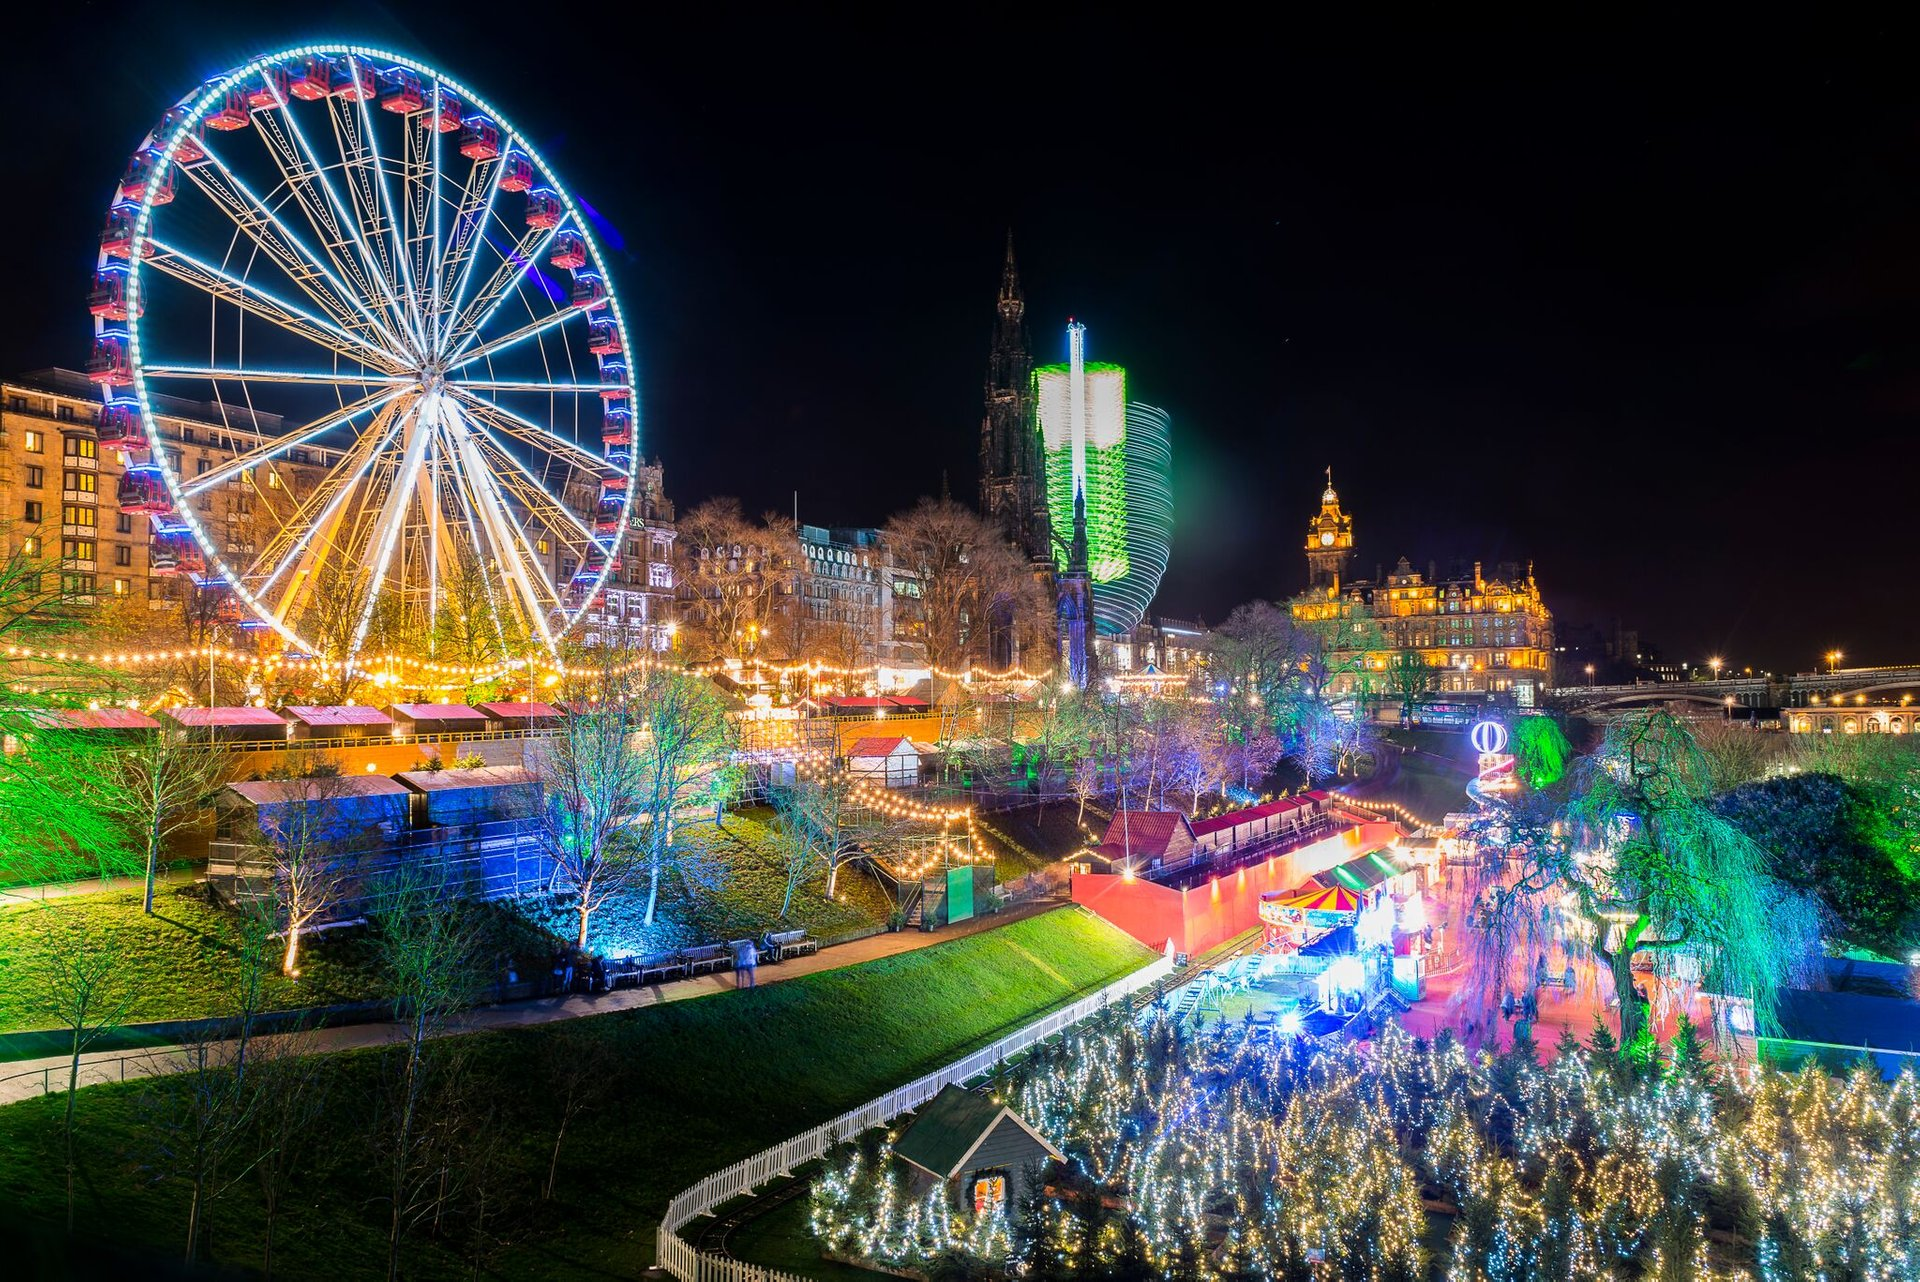 Christmas Lights in Edinburgh 2020 - Best Time